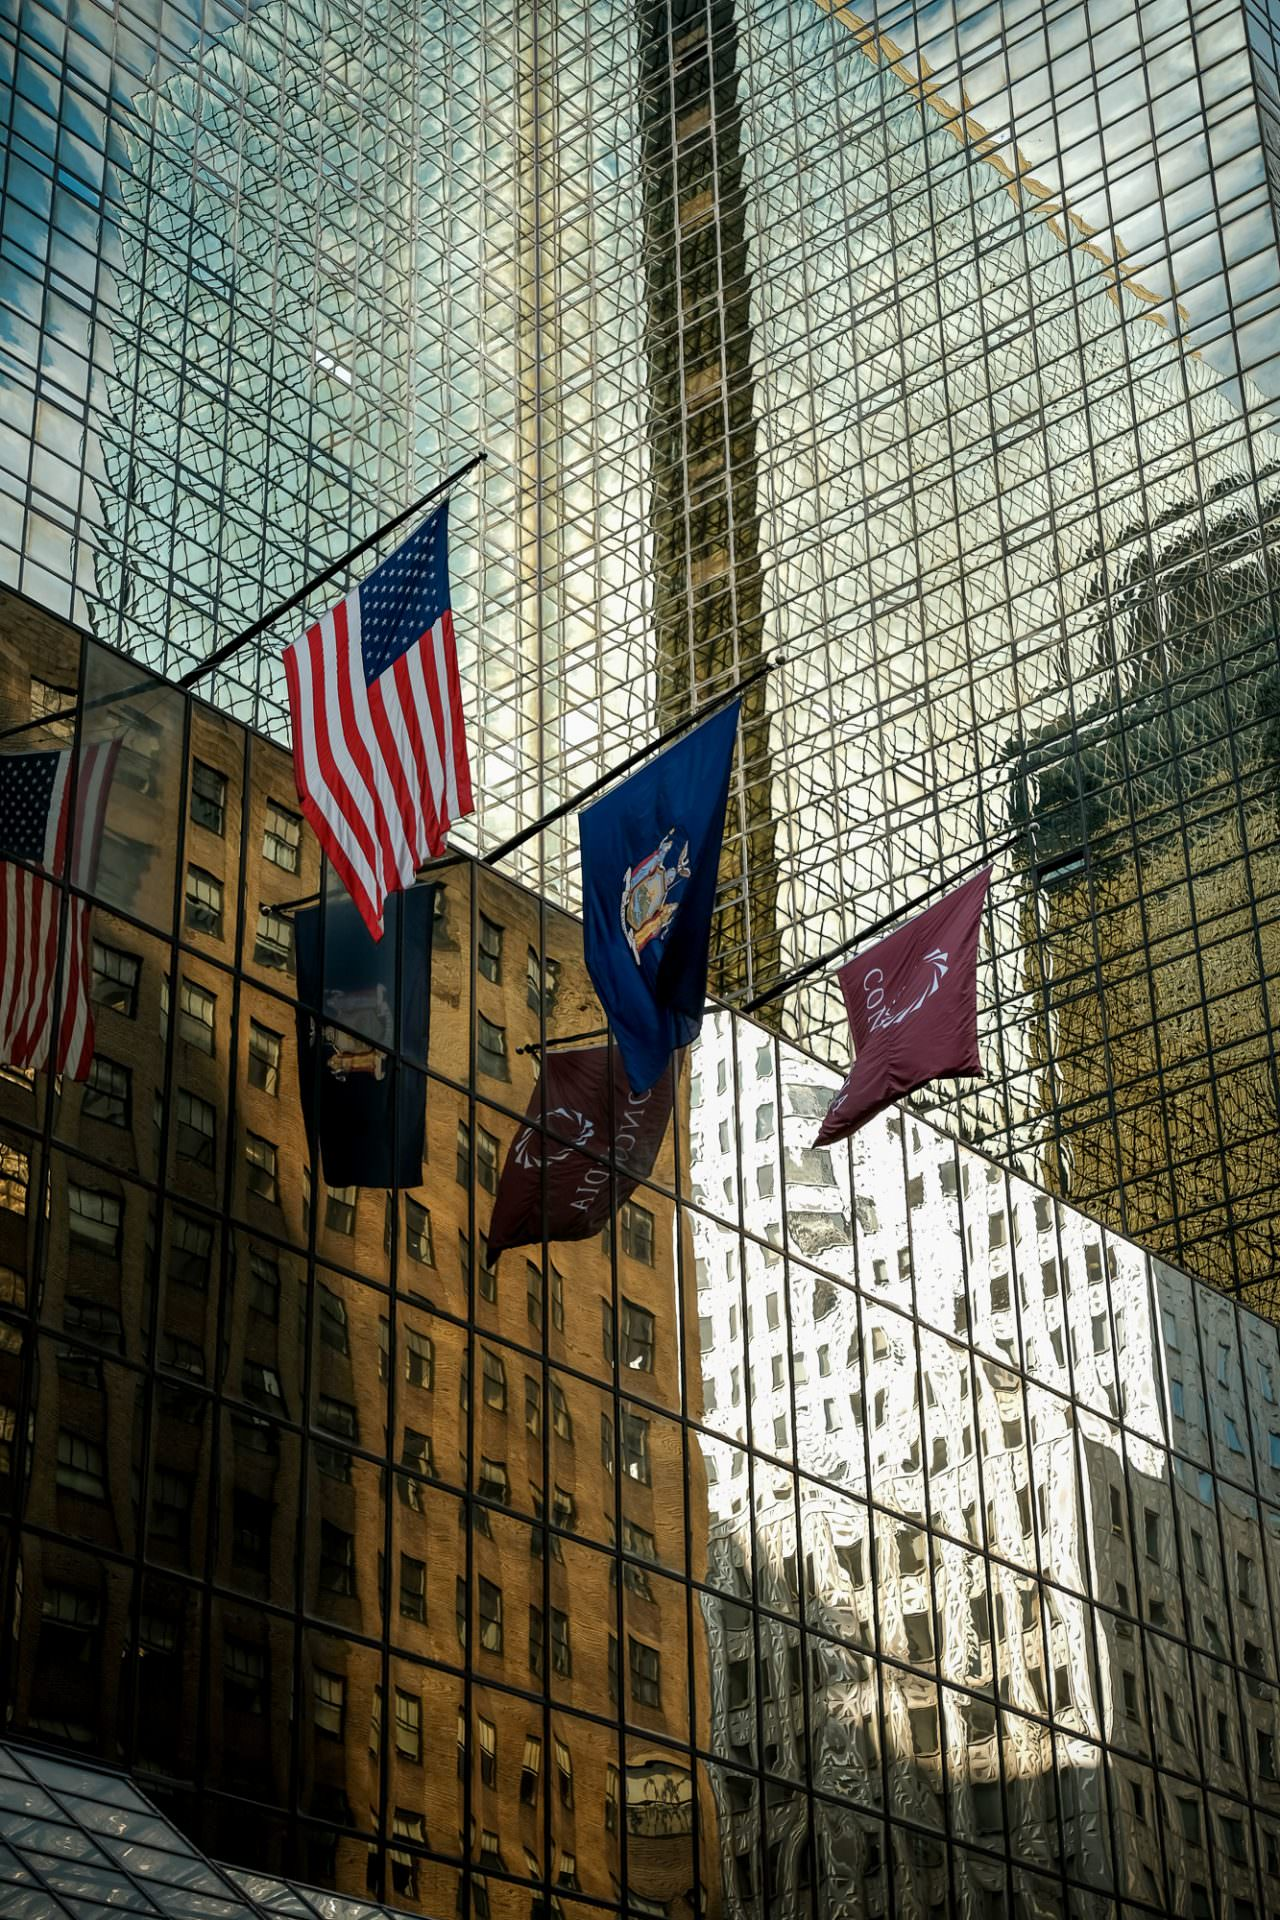 Flags in New York City